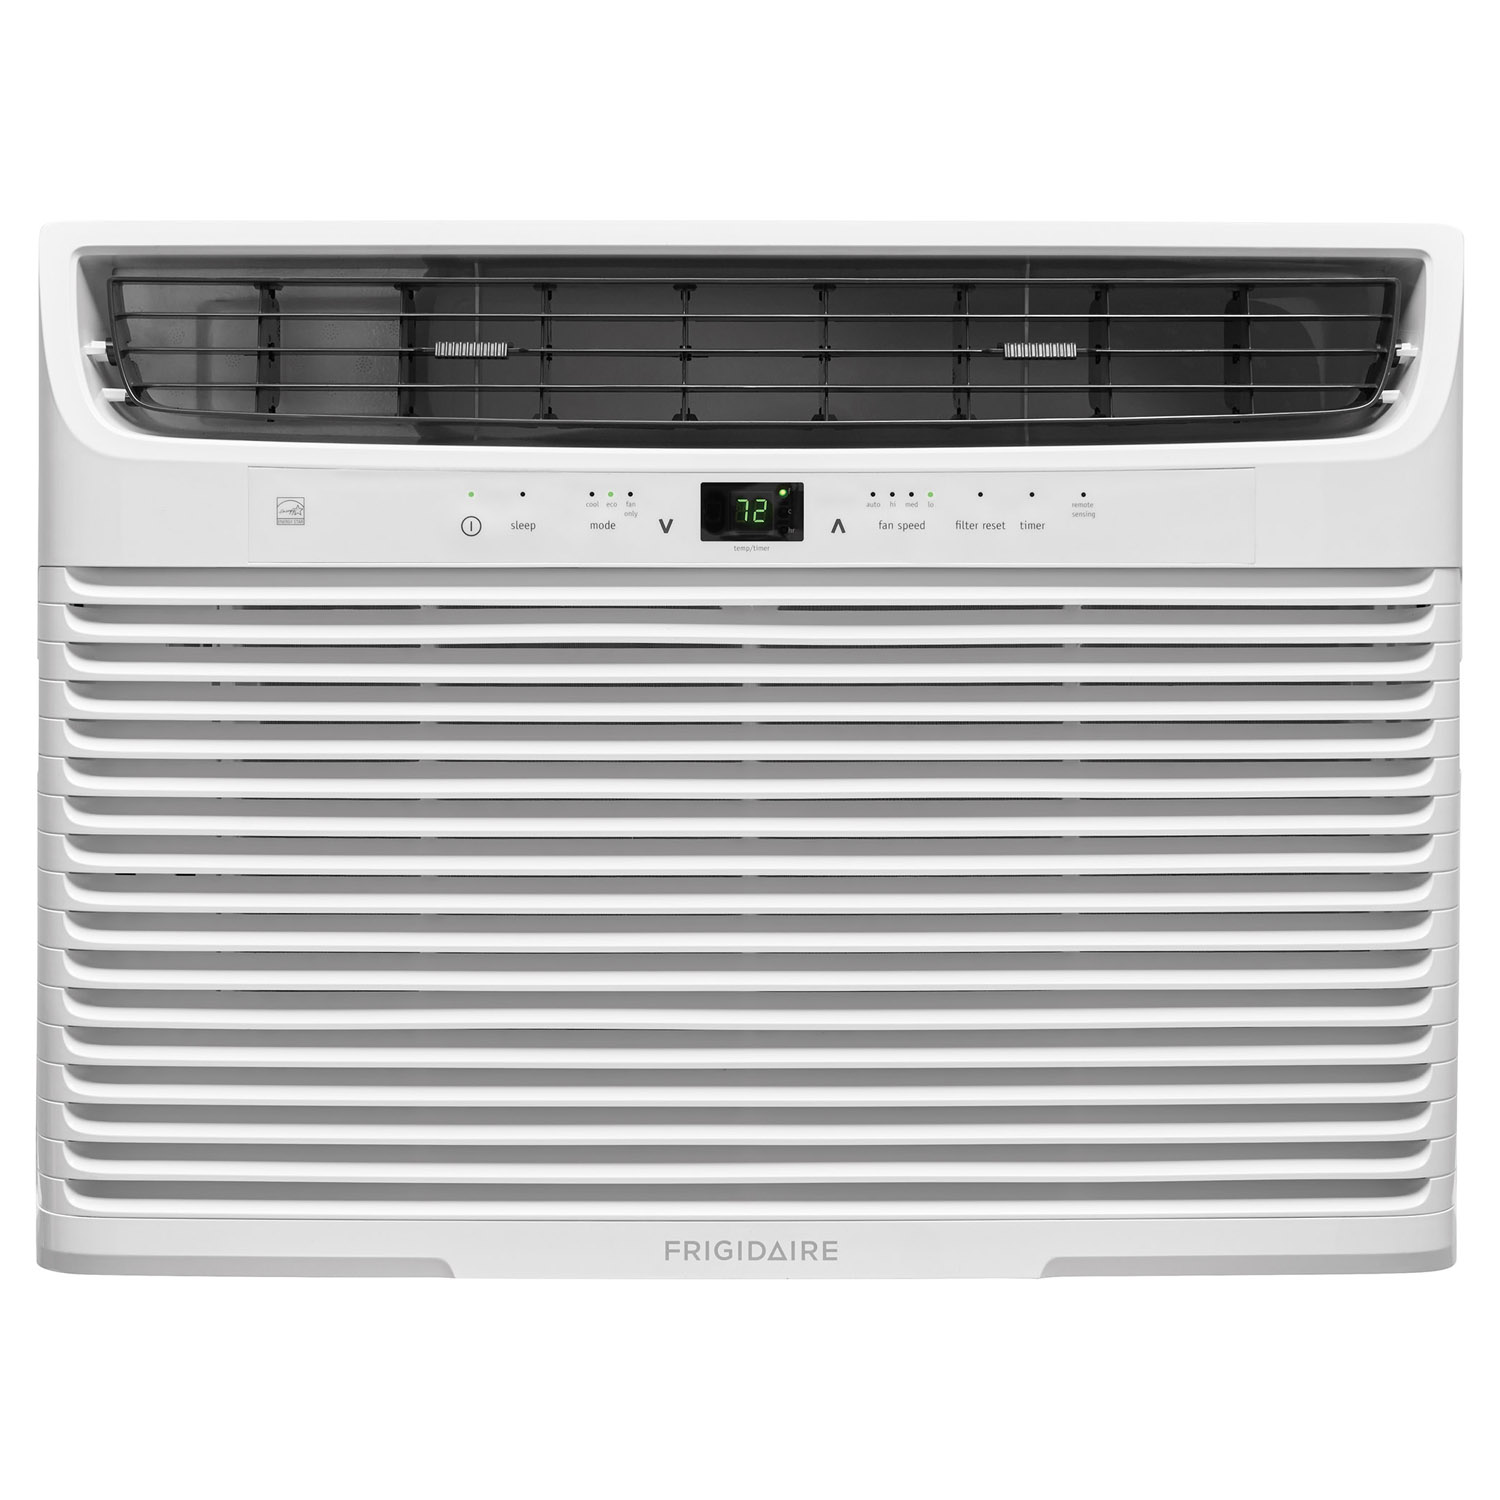 Frigidaire 18,000 BTU 11.9 EER 230V White Median Window Air Conditioner